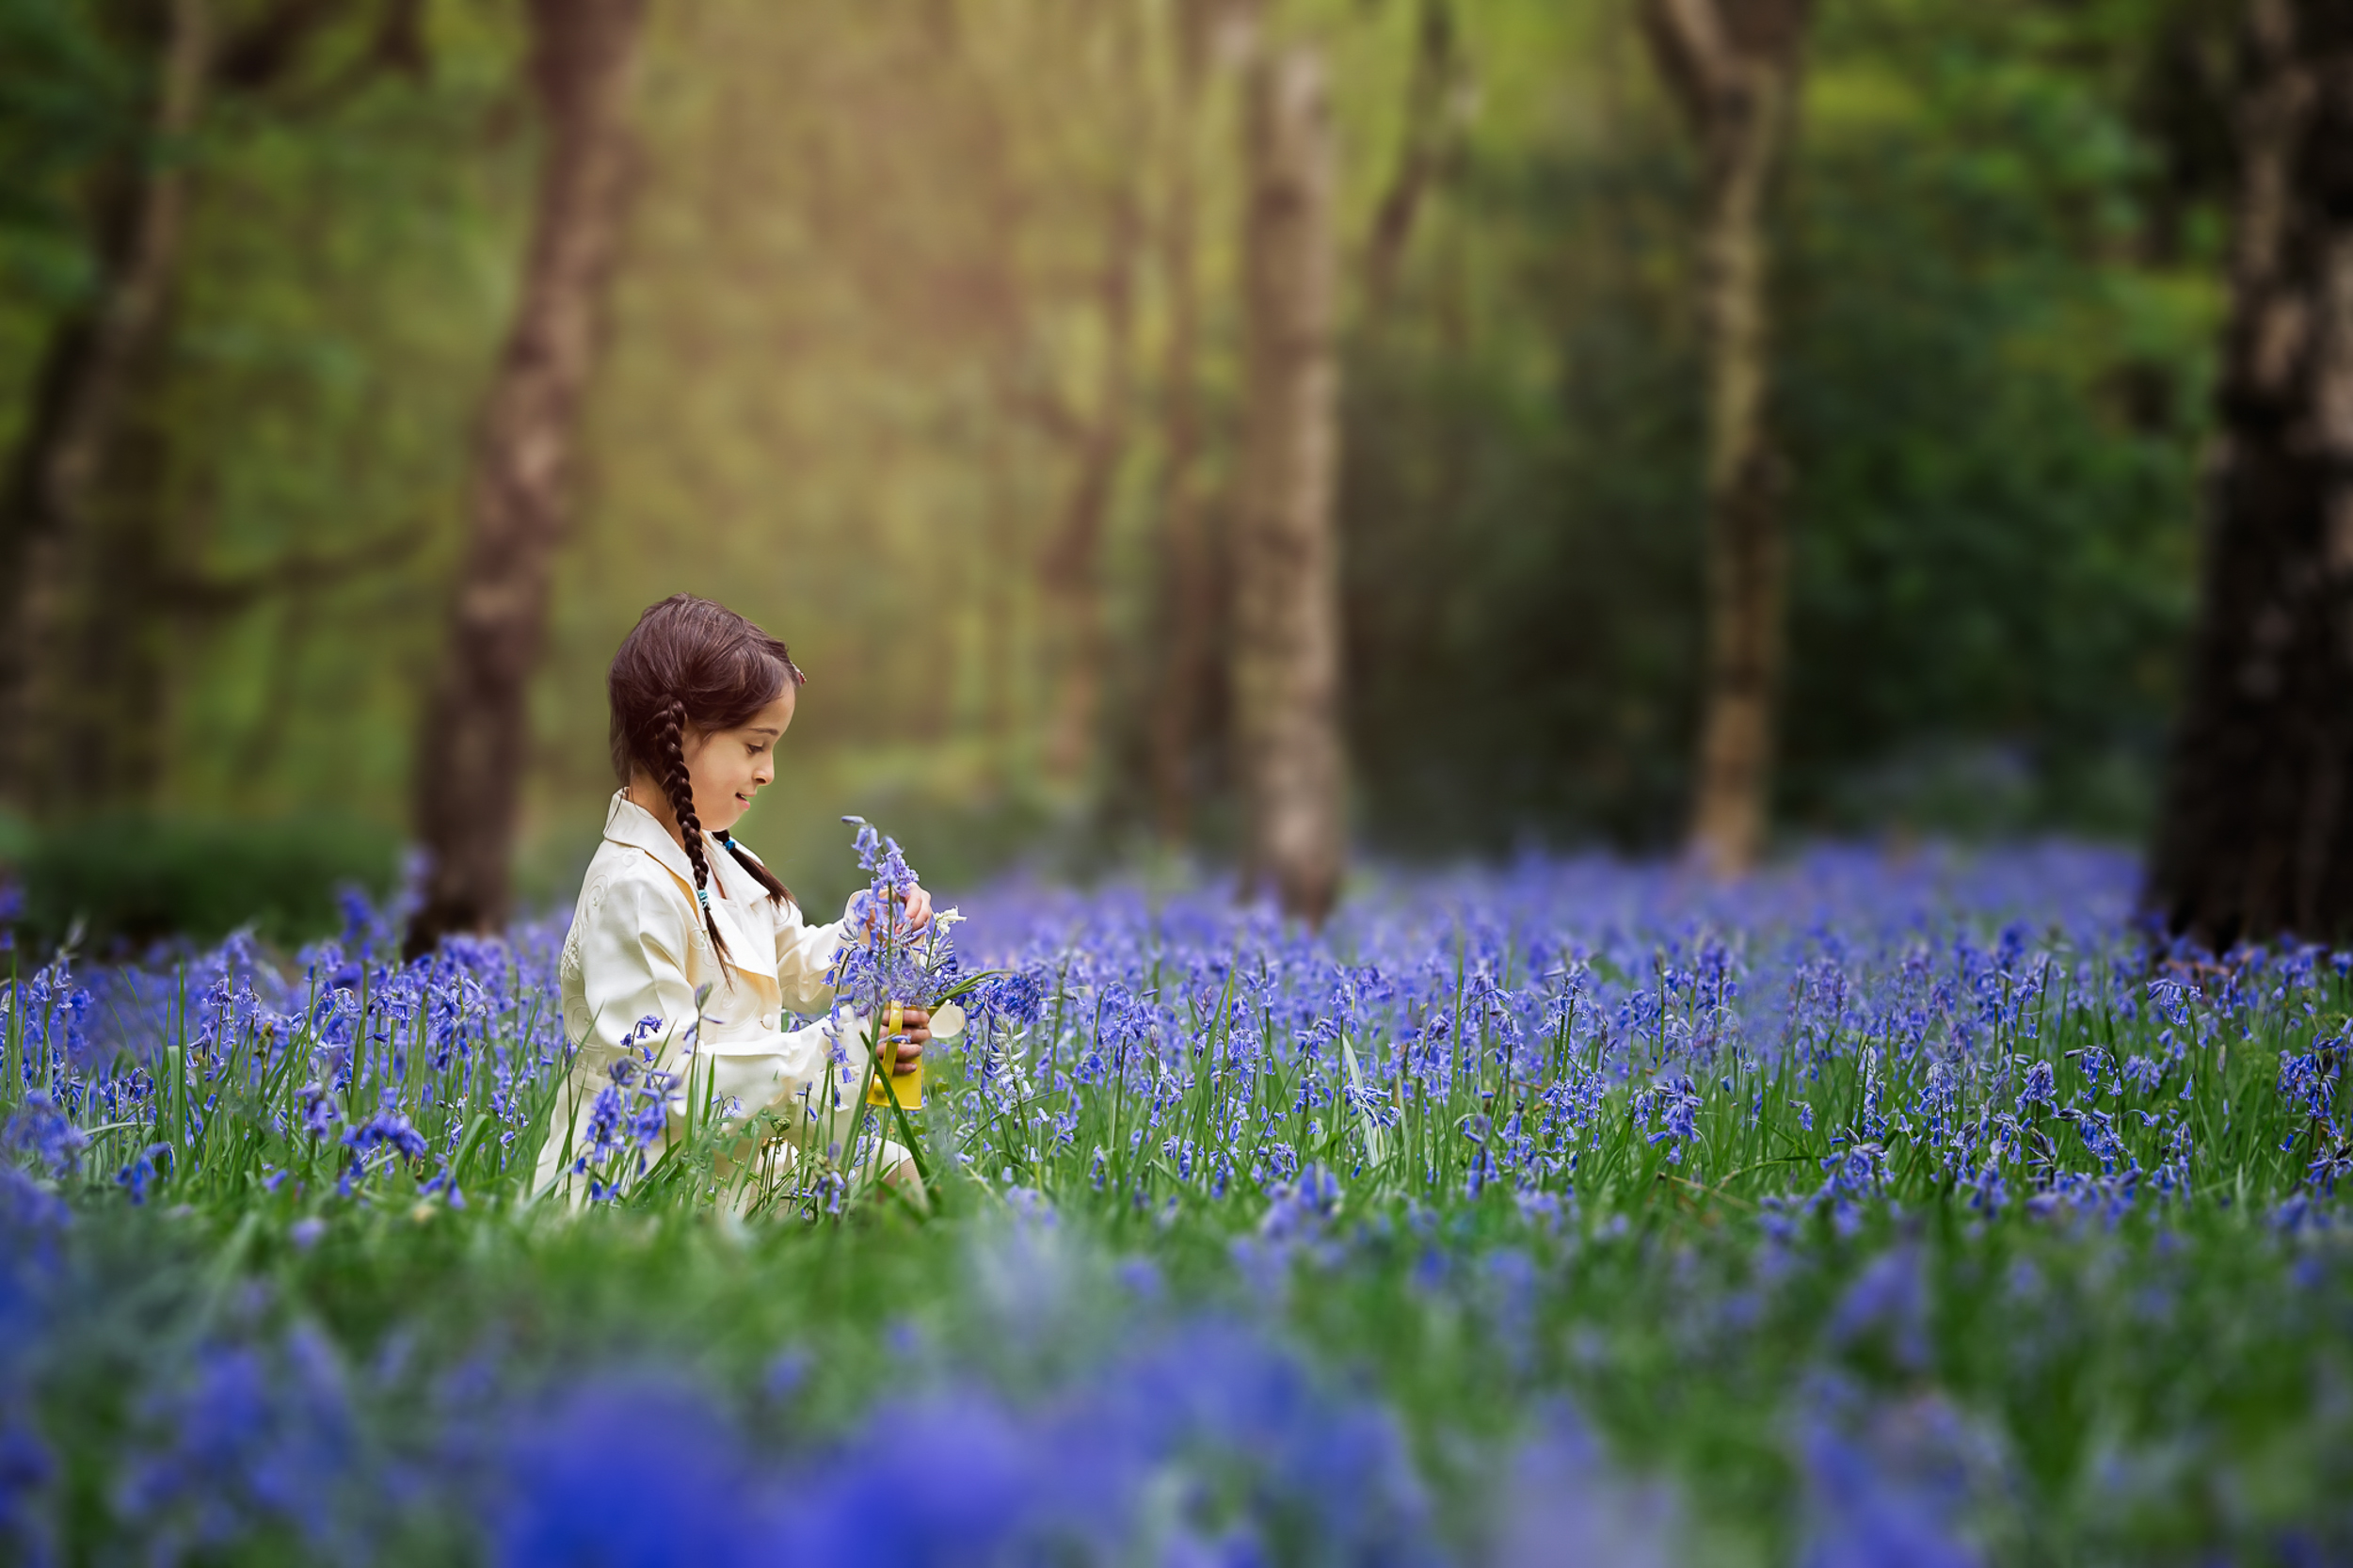 Leeds children photography: little girl sitting in the middle of a bluebell patch